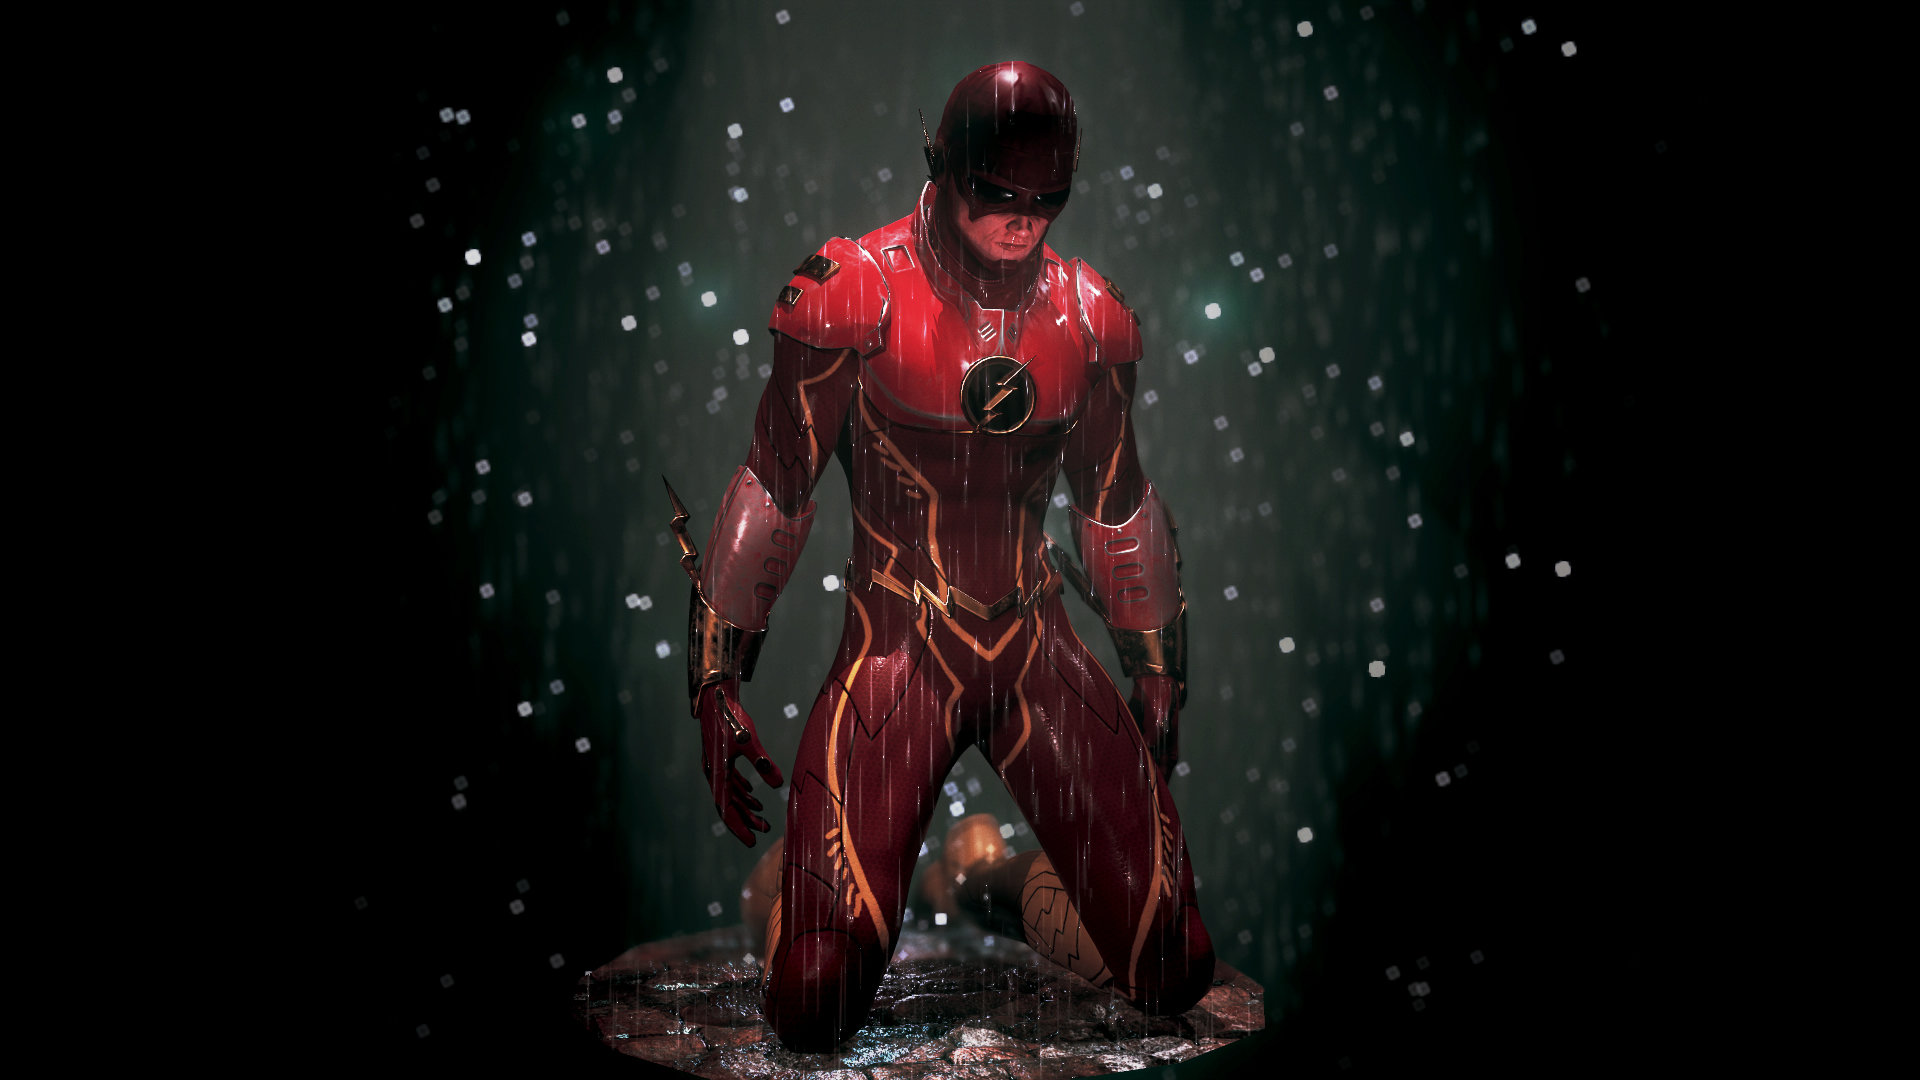 Best Flash Wallpaper 3d: The Flash, Mickael Vermosen